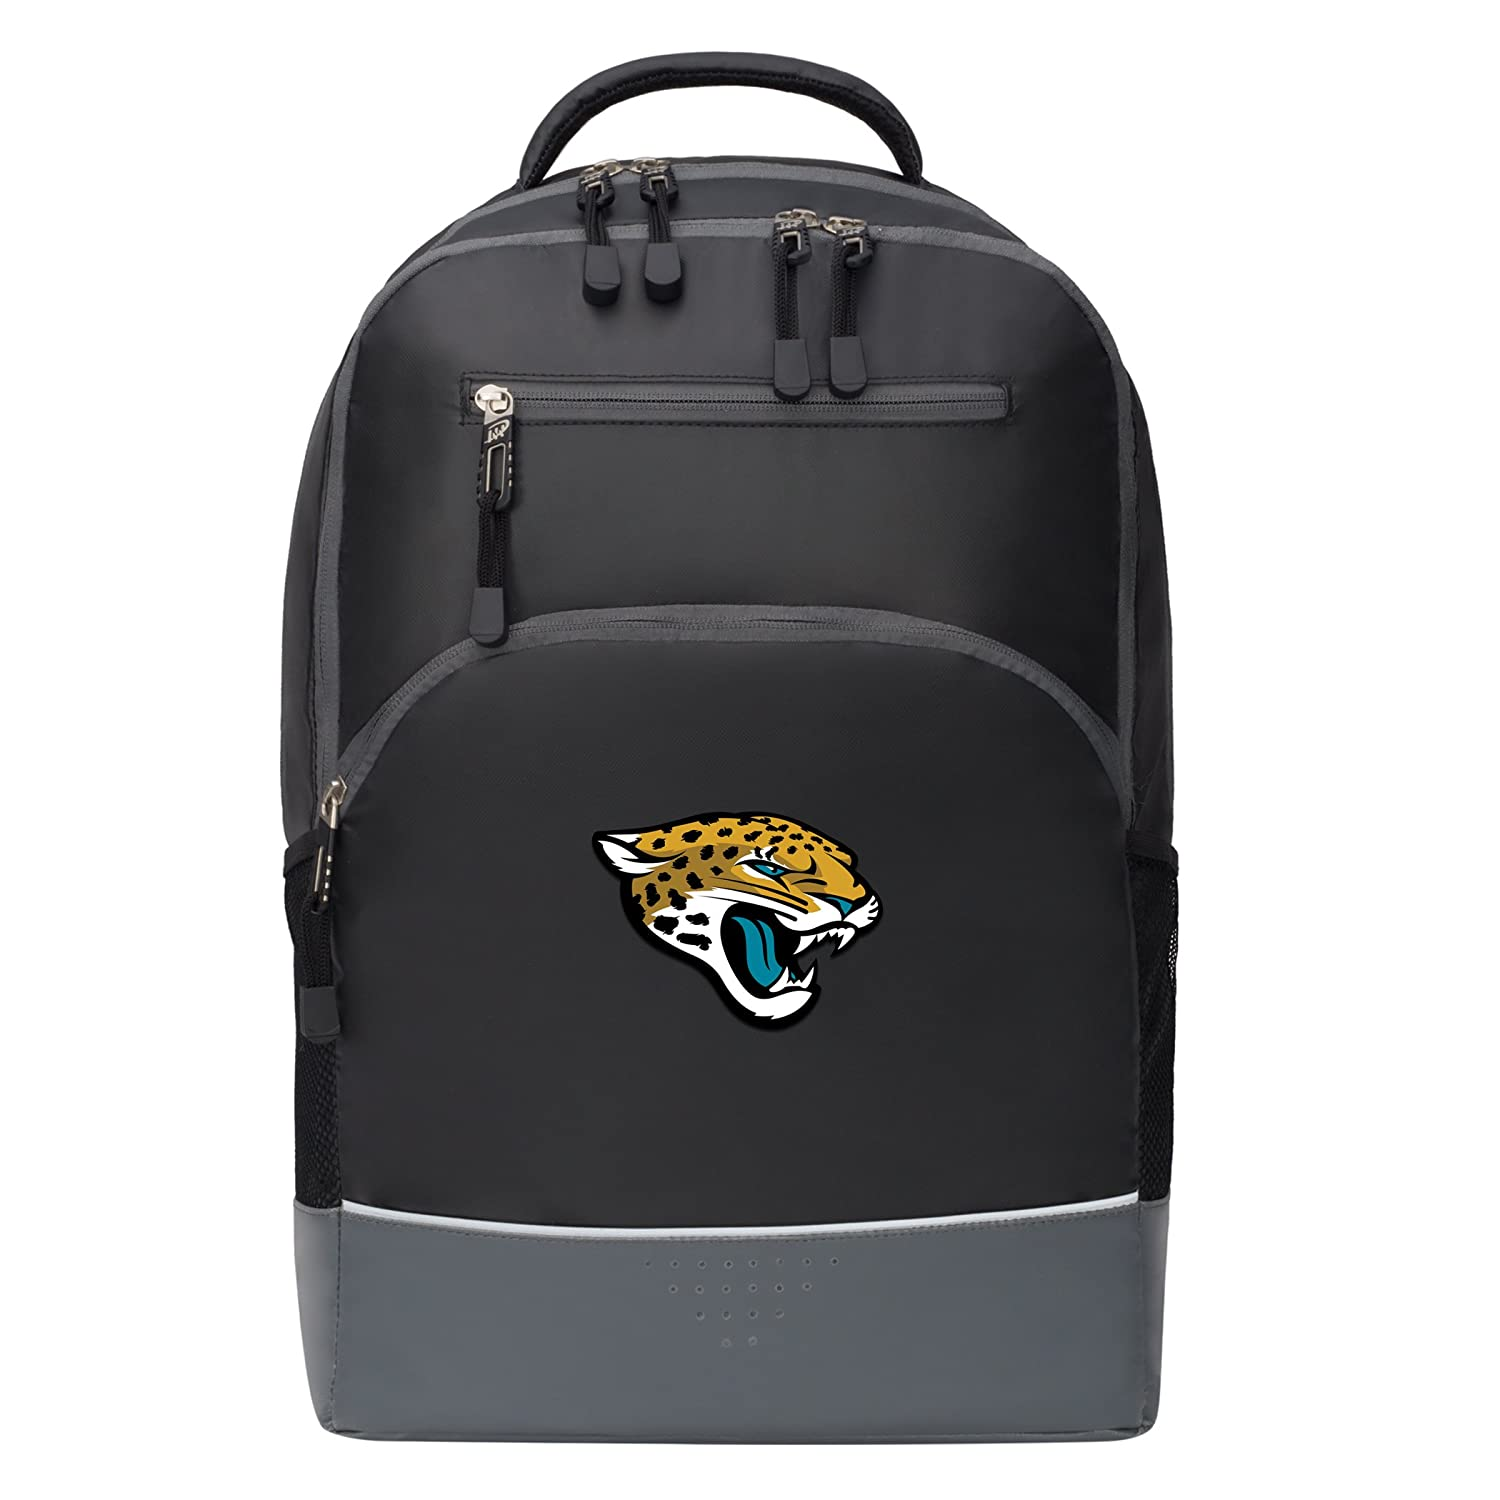 The Northwest会社Officially Licensed NFL Allianceバックパック B07DGSRSY9   Jacksonville Jaguars